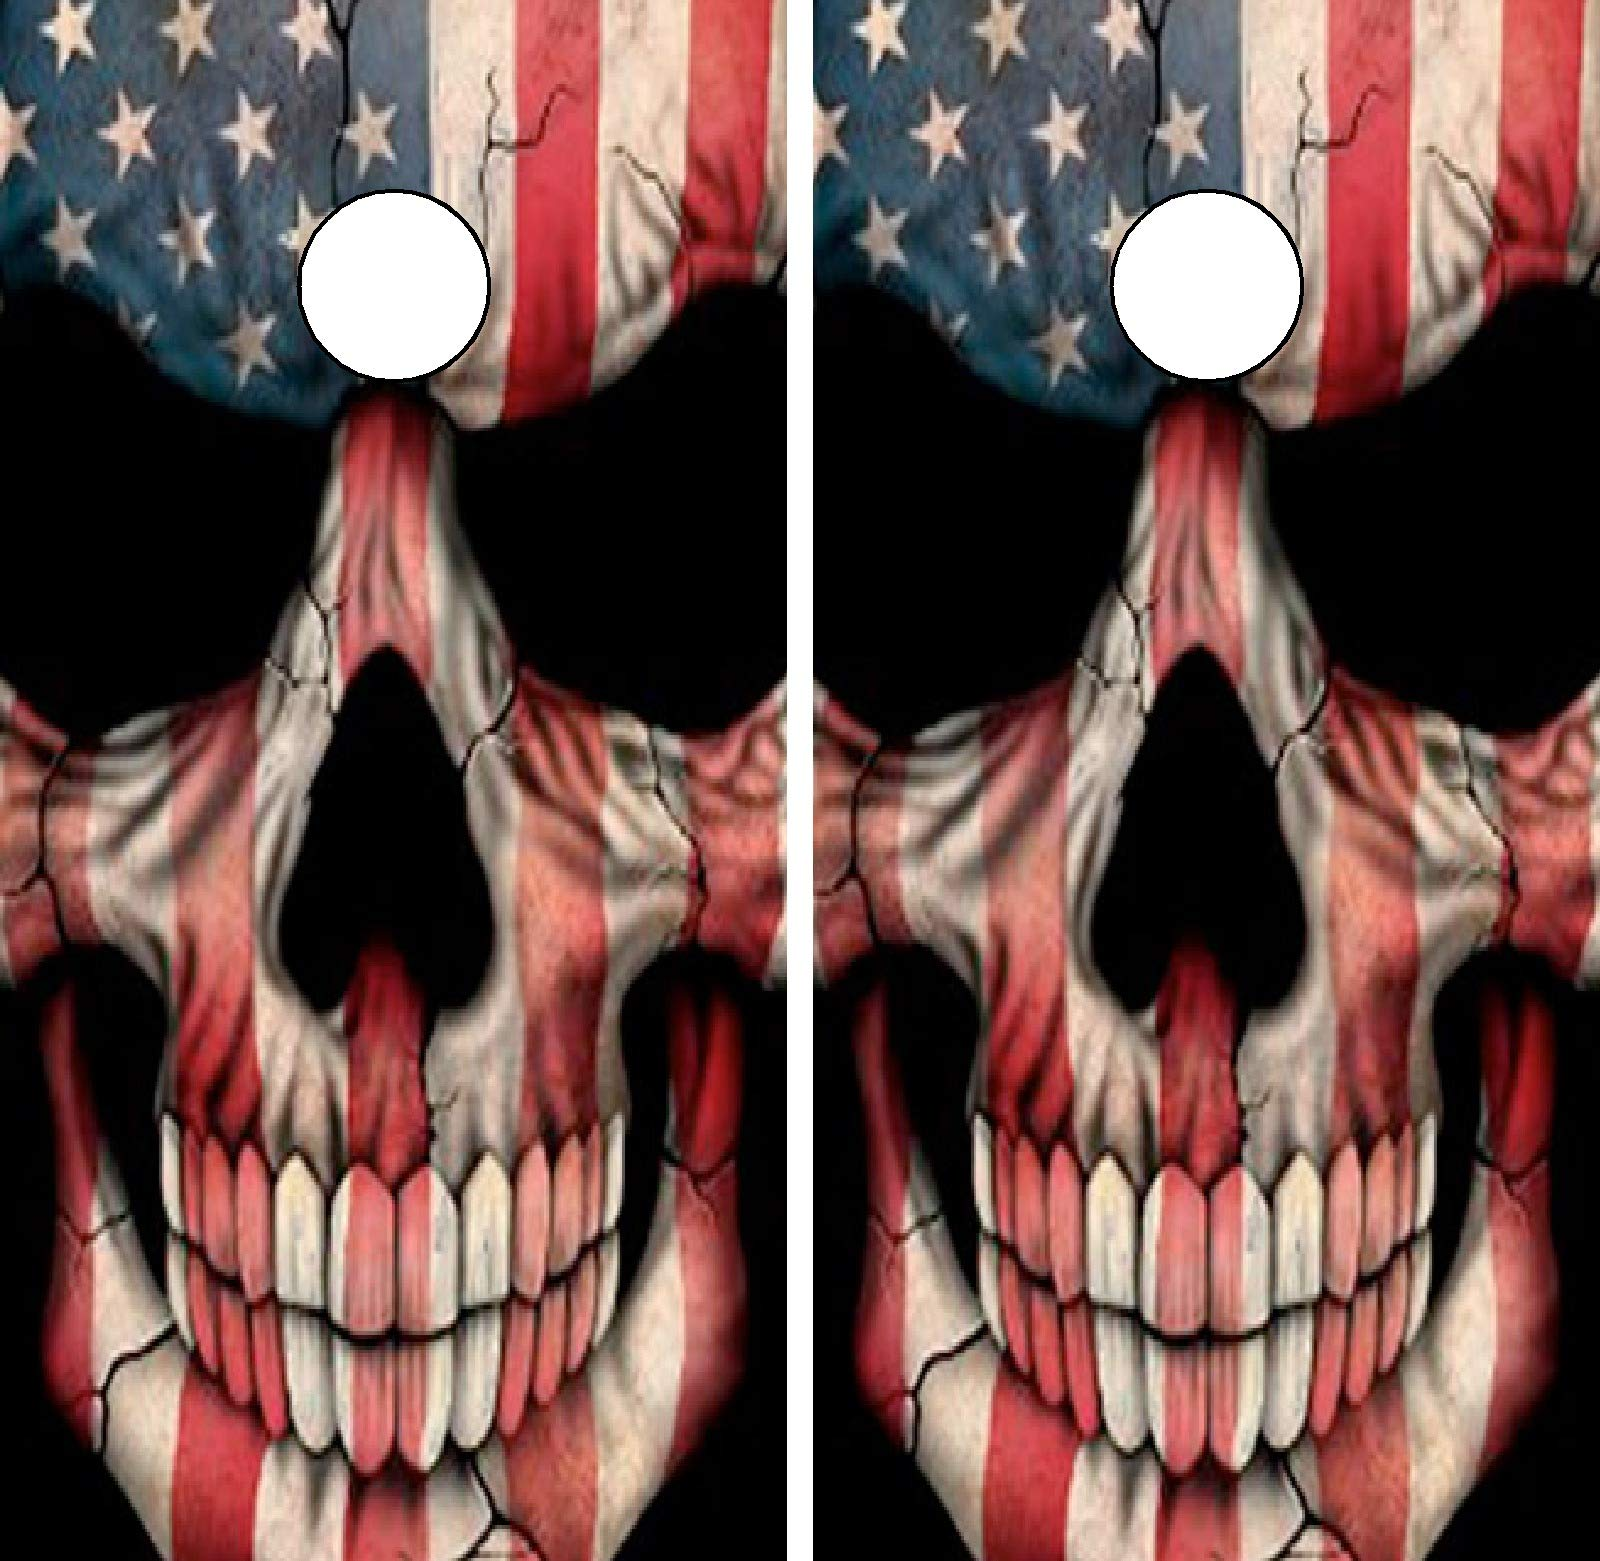 Cornhole Board Wrap Wraps American Flag Skull C22 Laminated Skin Boards Decal Set Decals Vinyl Sticker Stickers Bean Bag Game Vinyl Graphic Tint Image